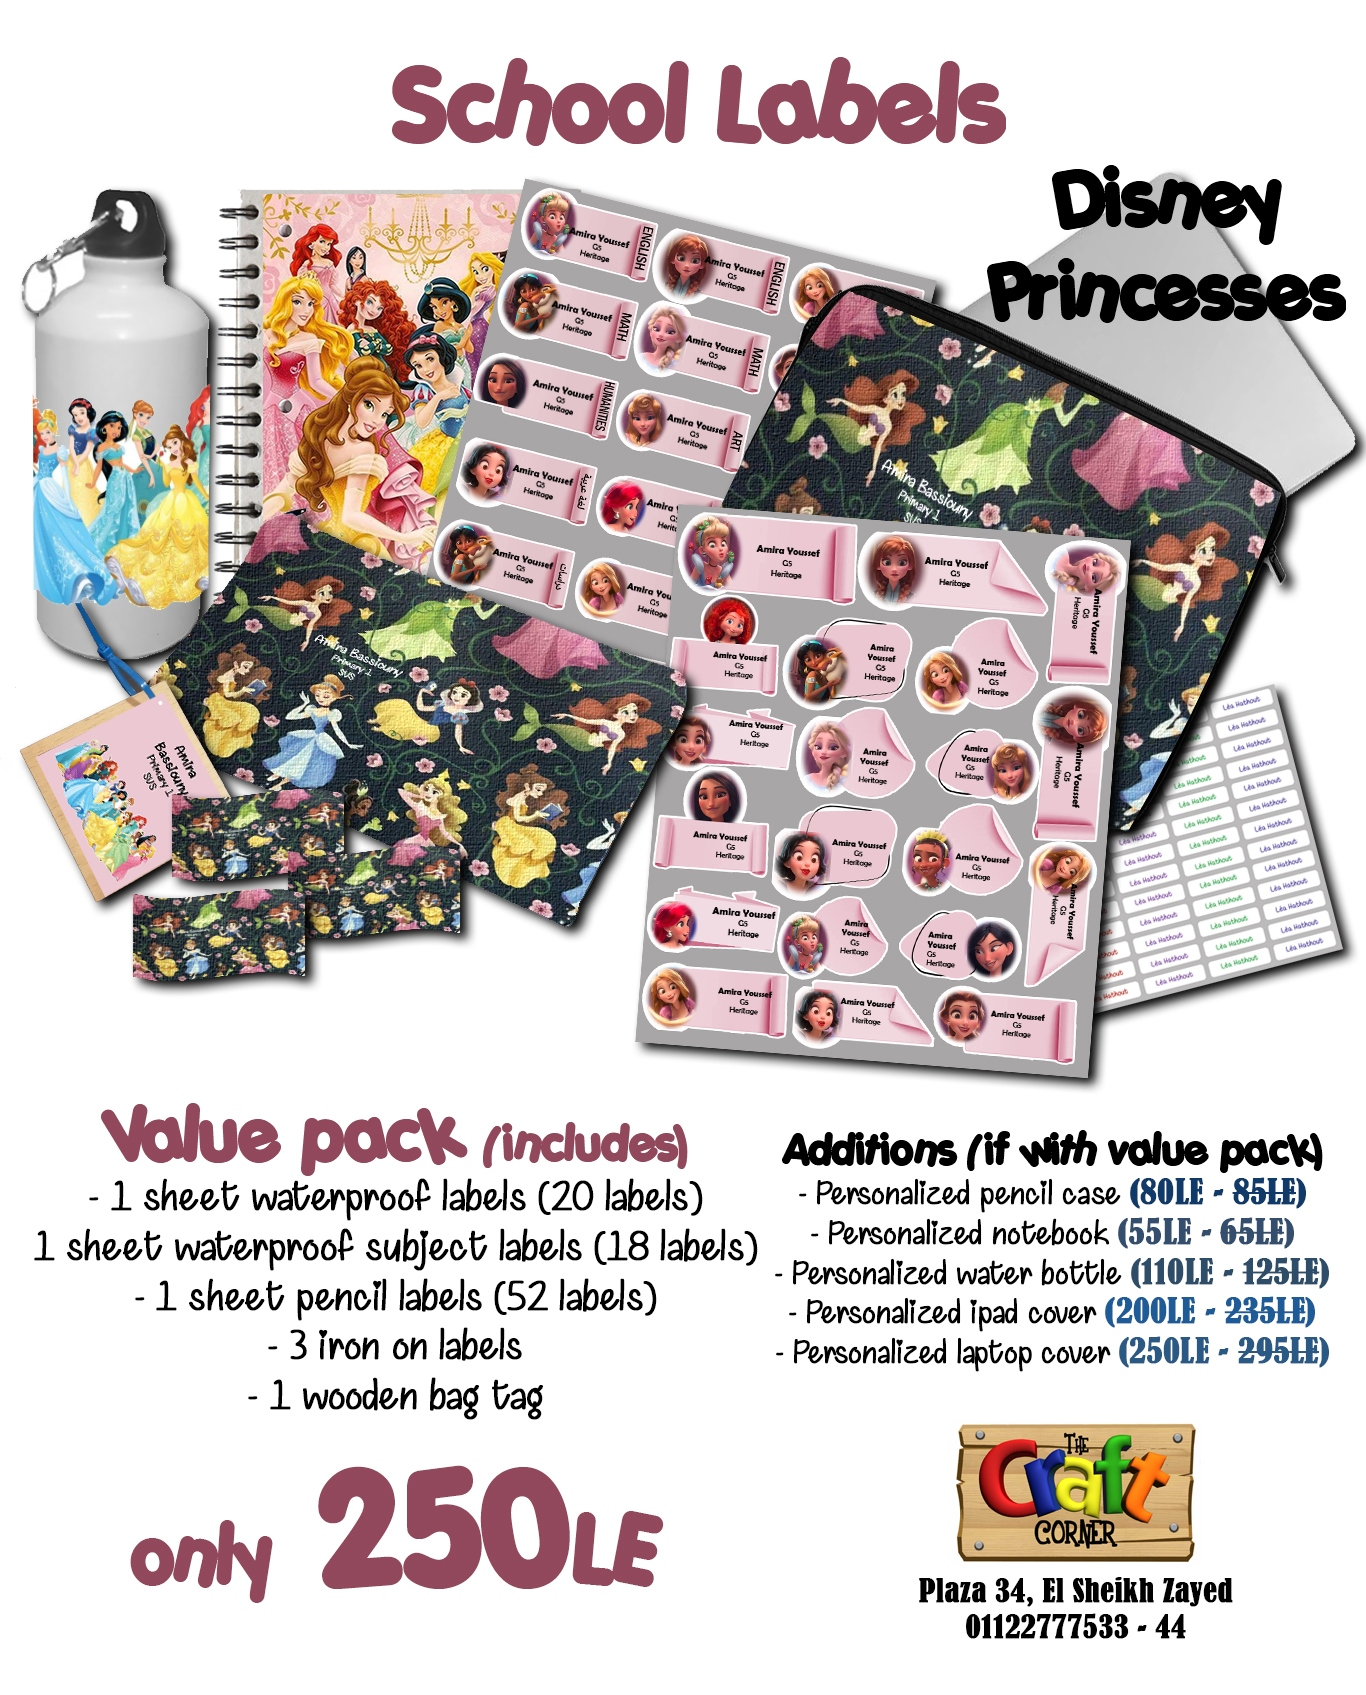 Disney princesses ad